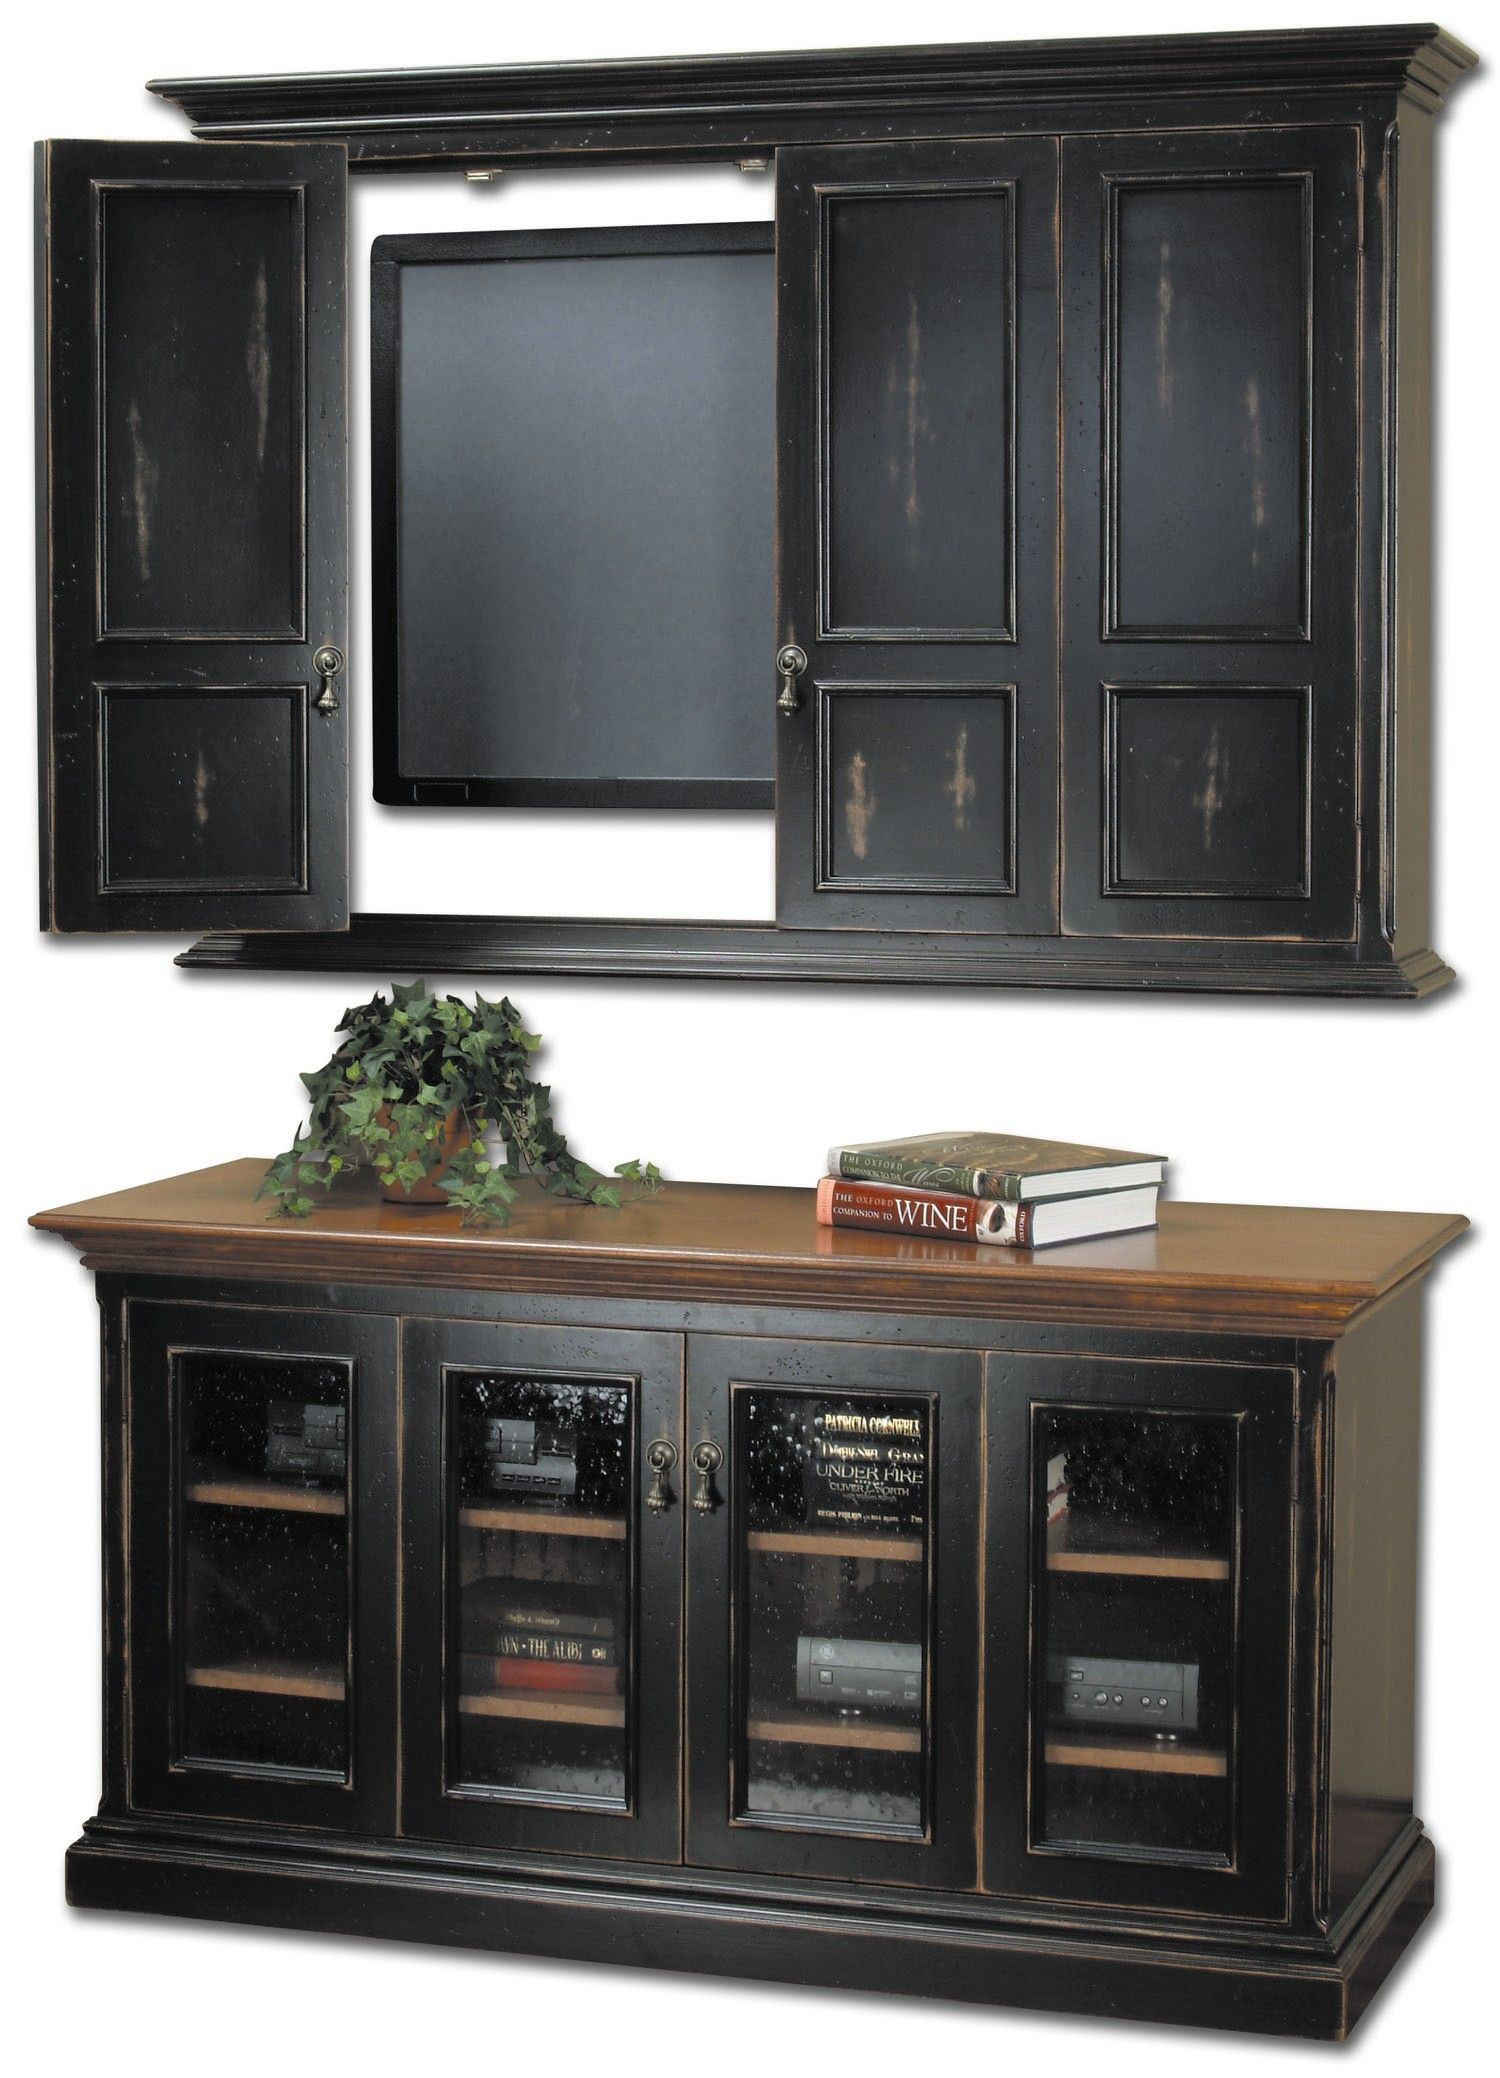 Tv Cabinet with Doors Luxury Flat Screen Tv Wall Cabinet for Our Back Deck